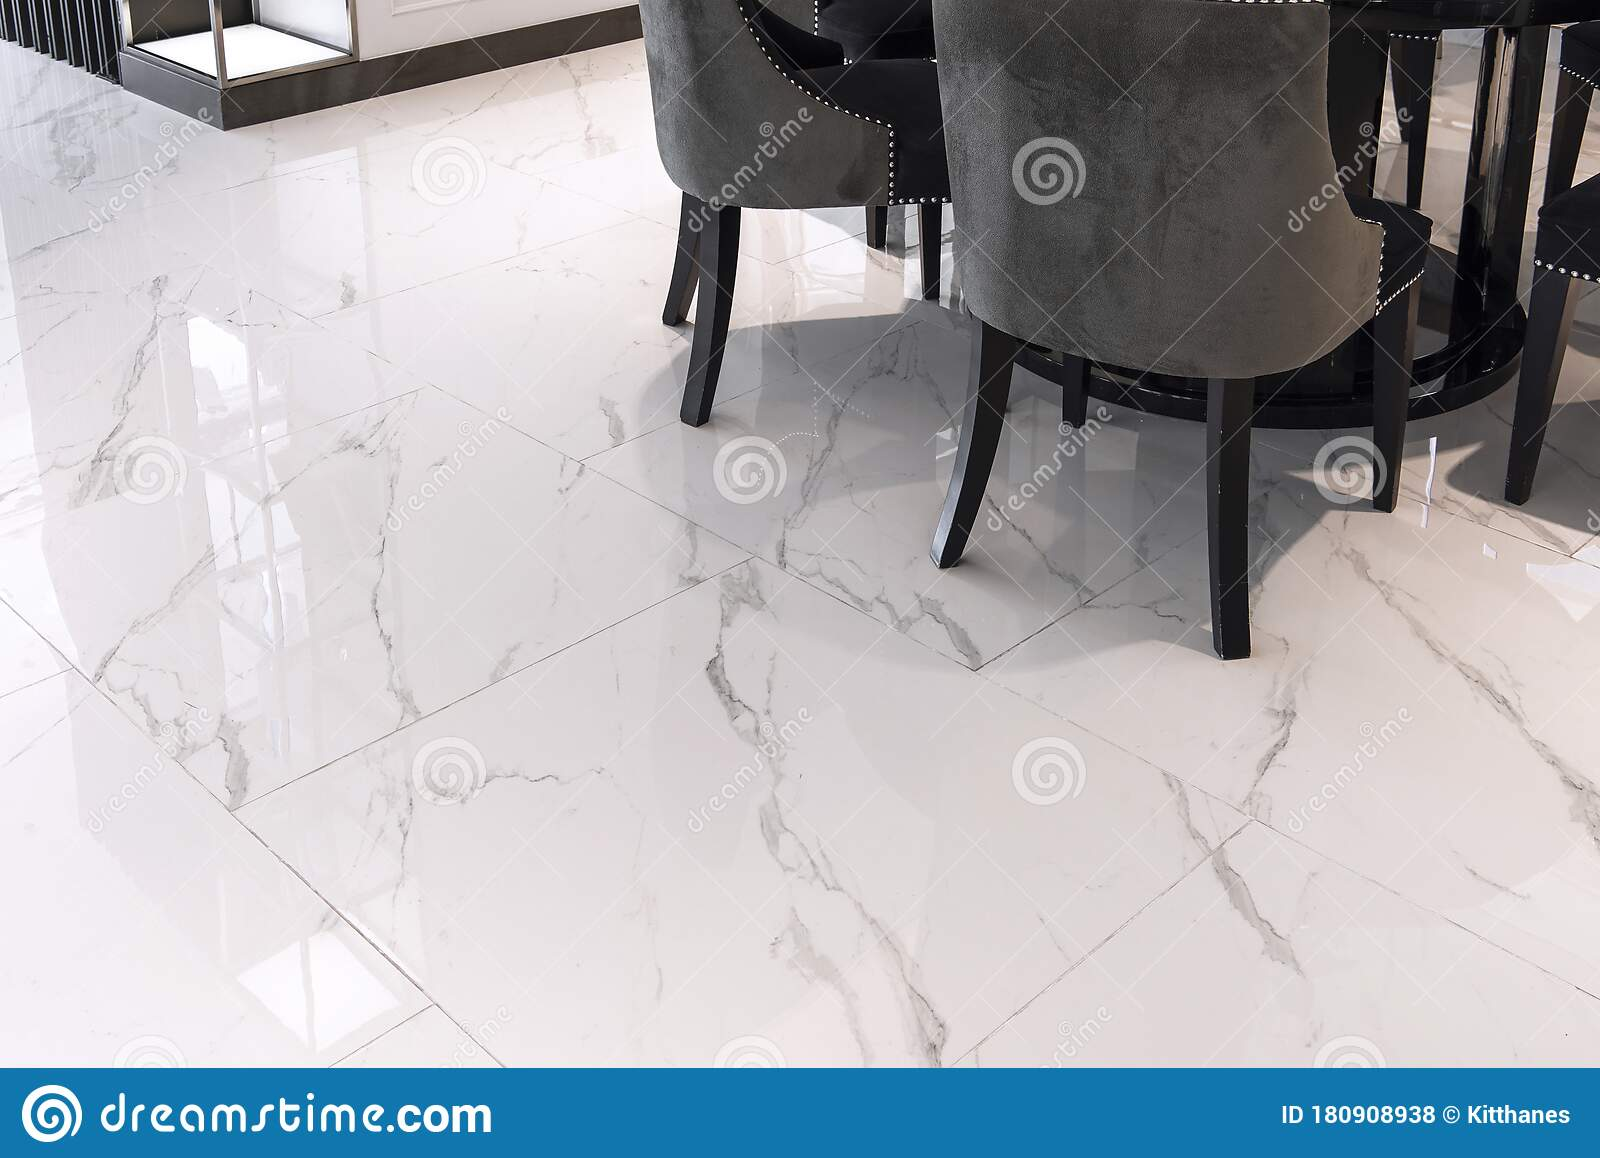 White Marble Floor Tiles In The Living Room Stock Photo Image Of Cabinet Elegance 180908938